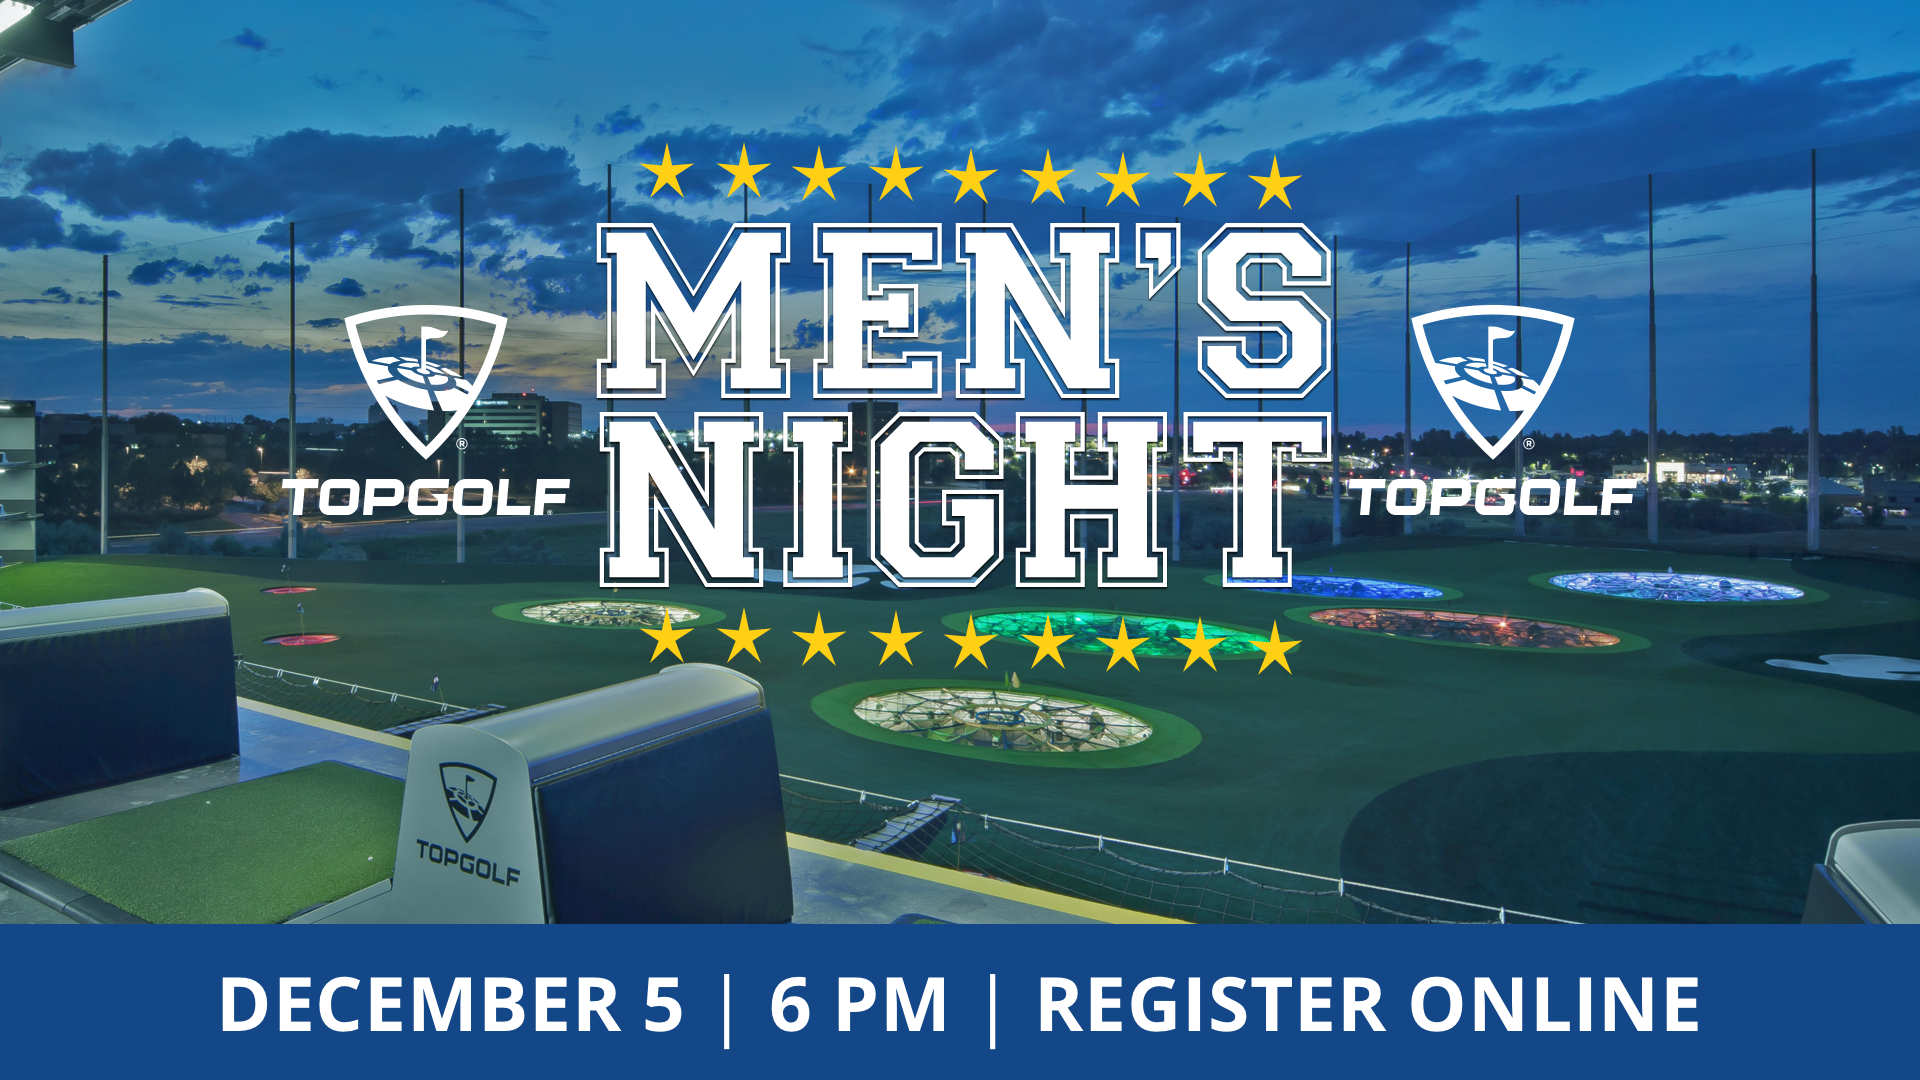 Providence north mens event top golf